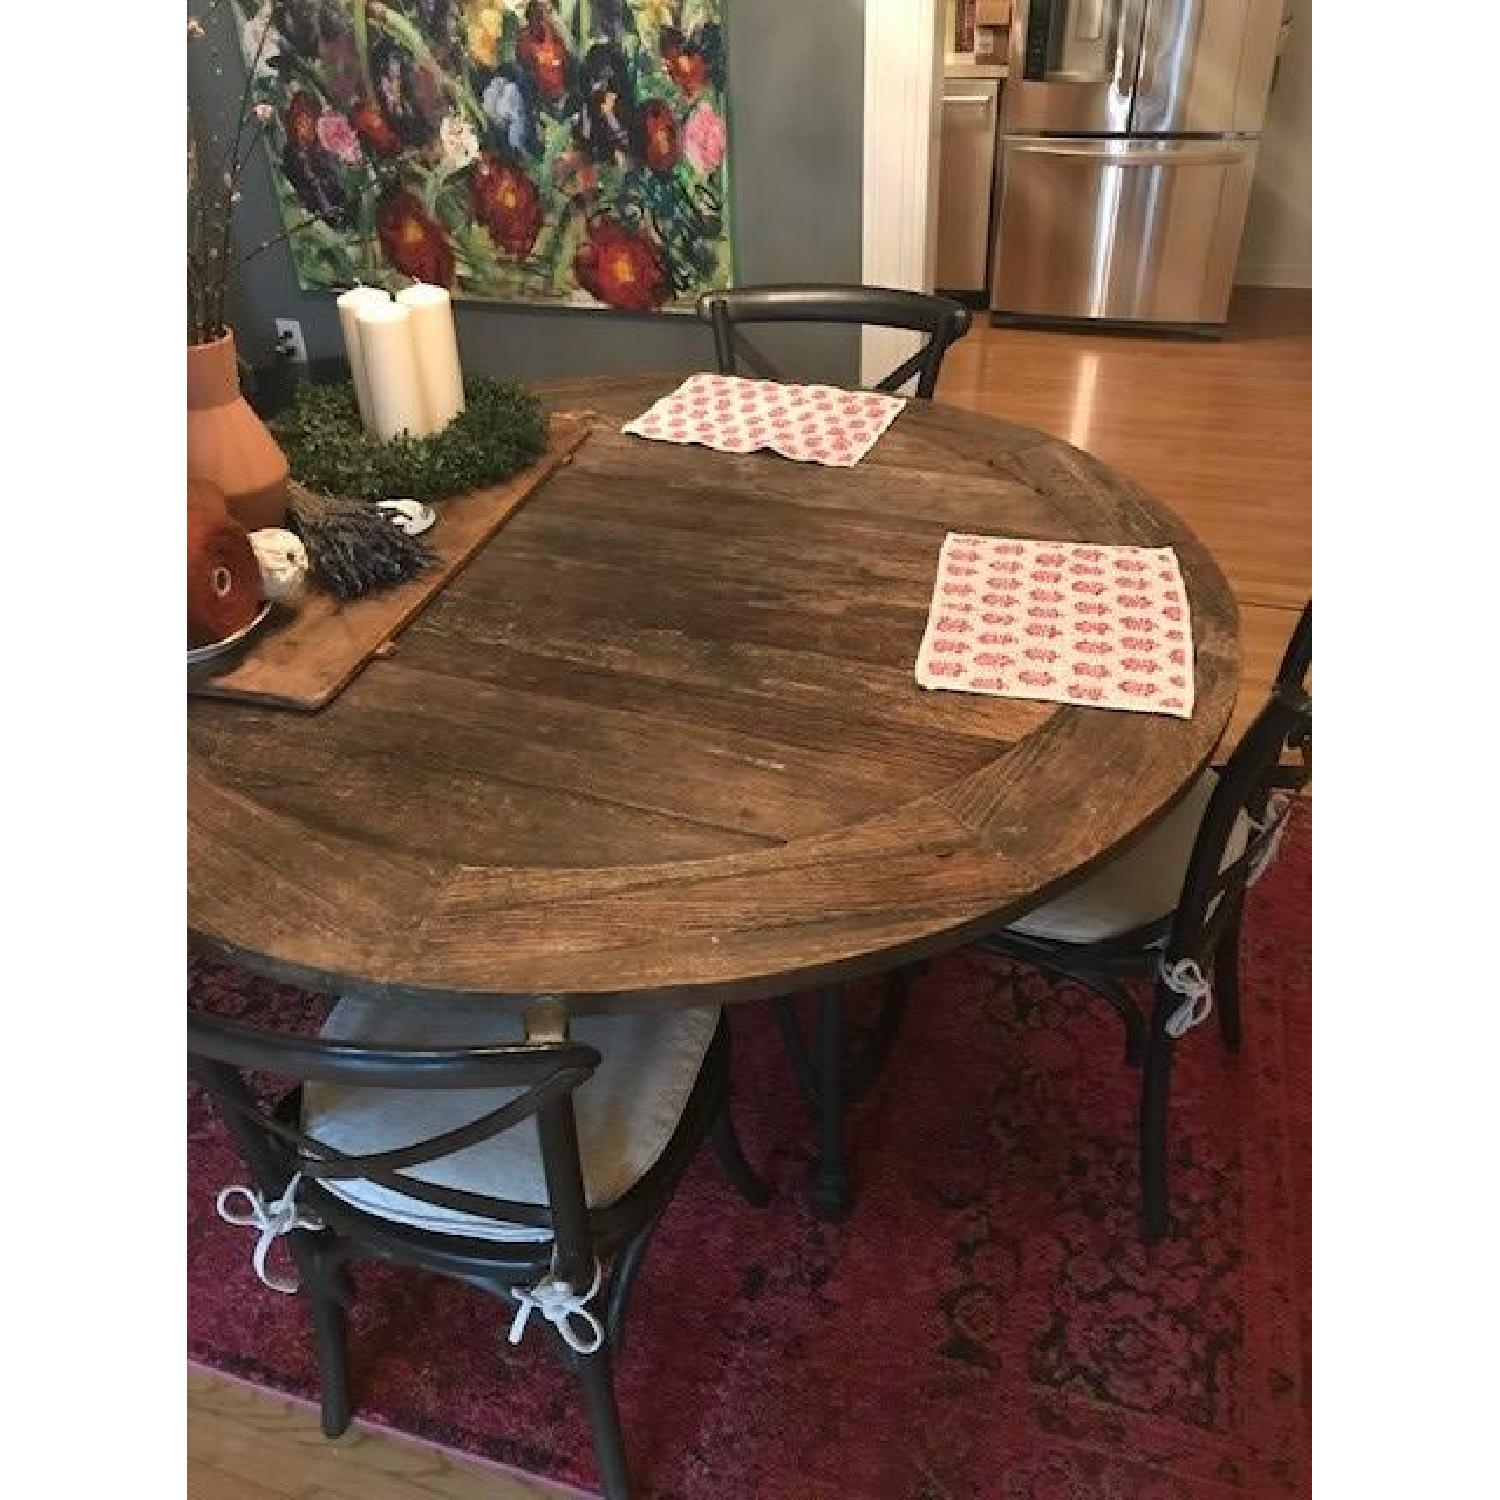 Restoration Hardware Flatiron Dining Table w/ 6 Chairs - image-1